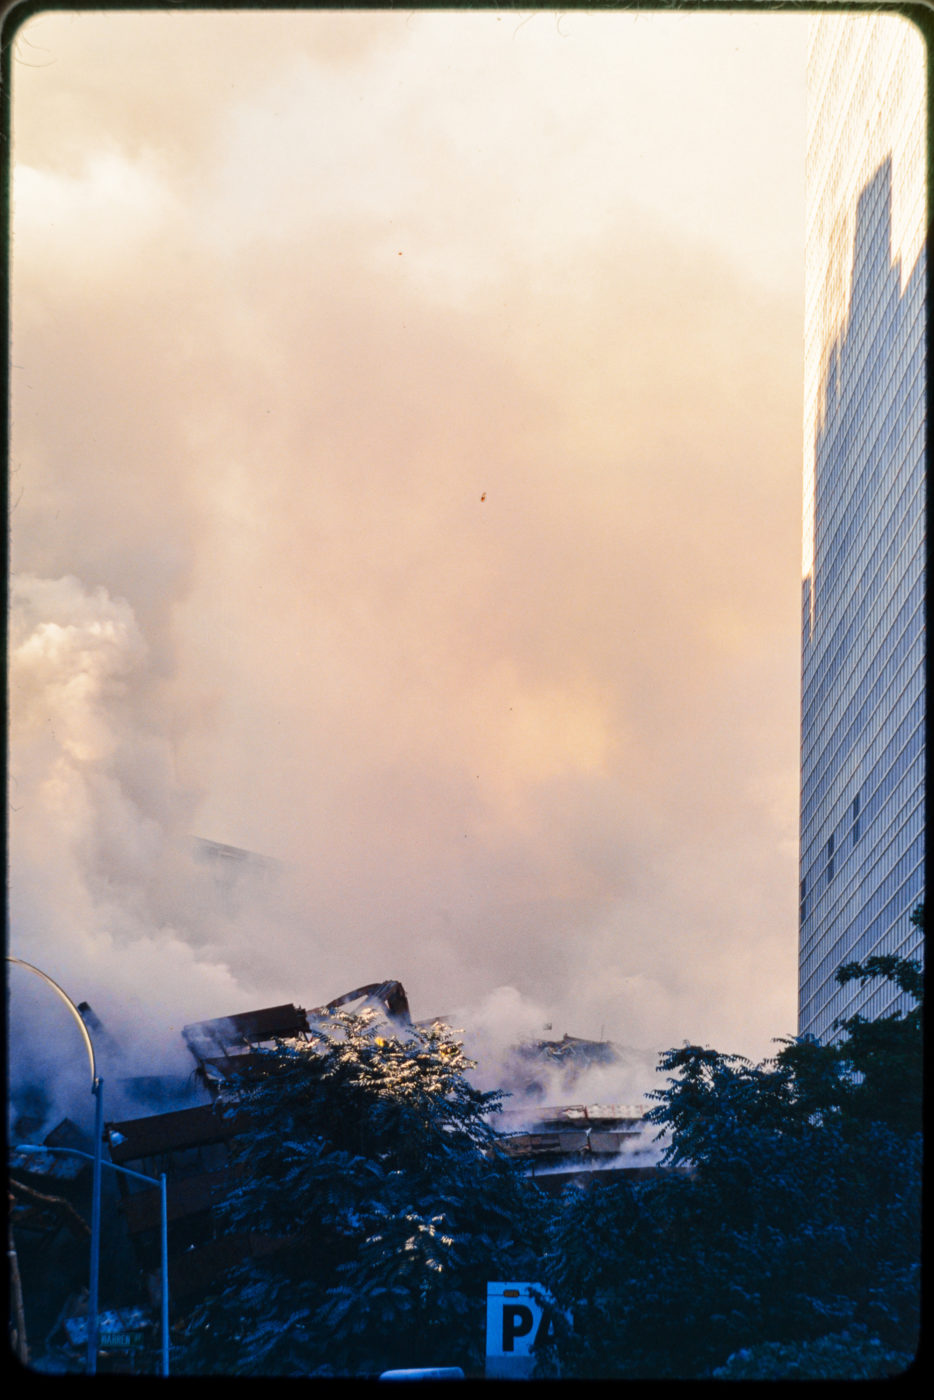 Huge Clouds of Smoke After Attack, Viewed Facing North on Greenwich Street.jpg